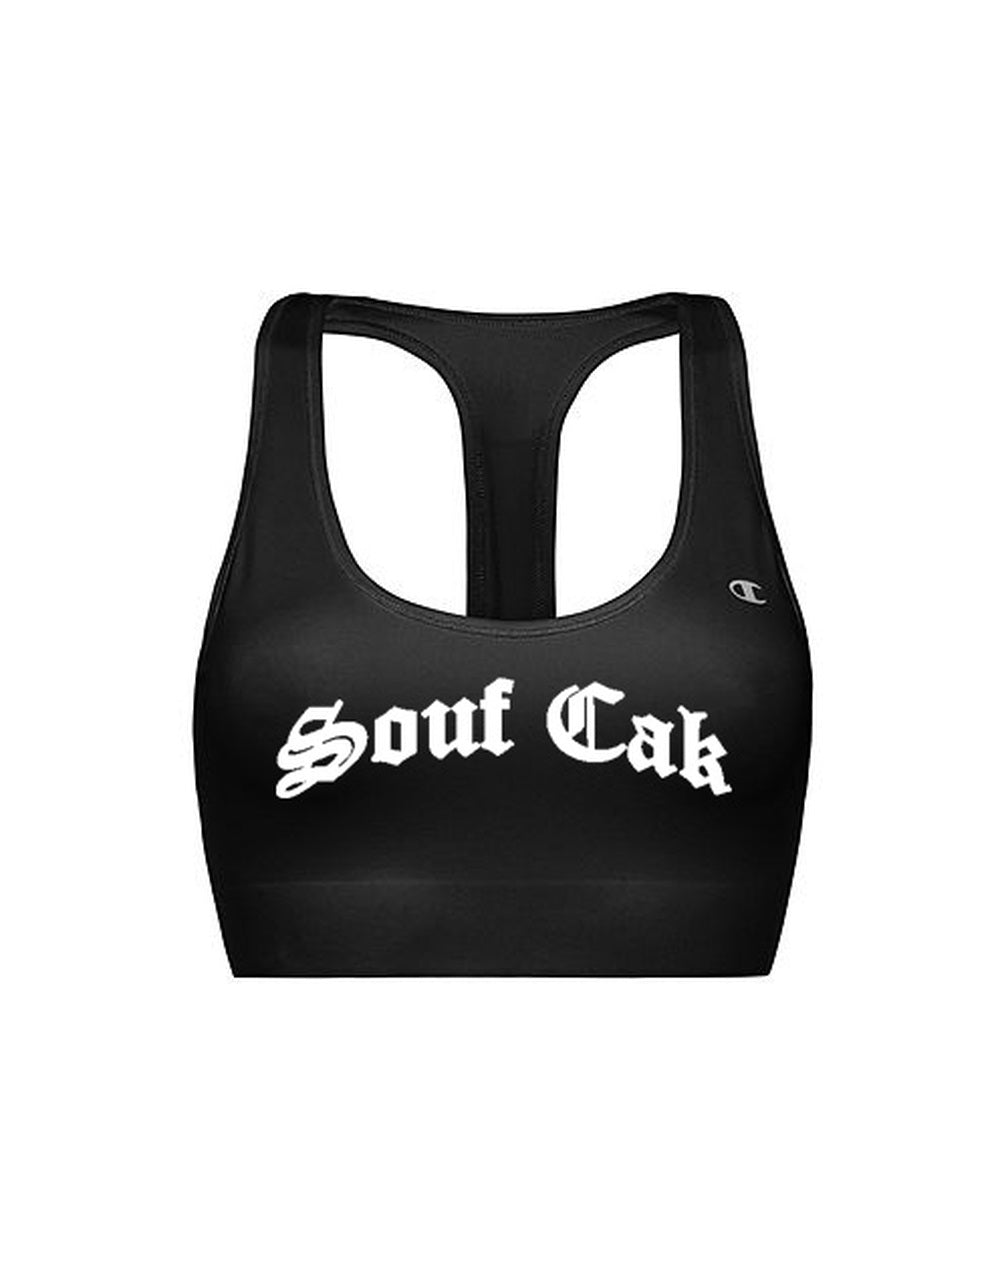 Souf Cak Champion Racerback Sports Bra